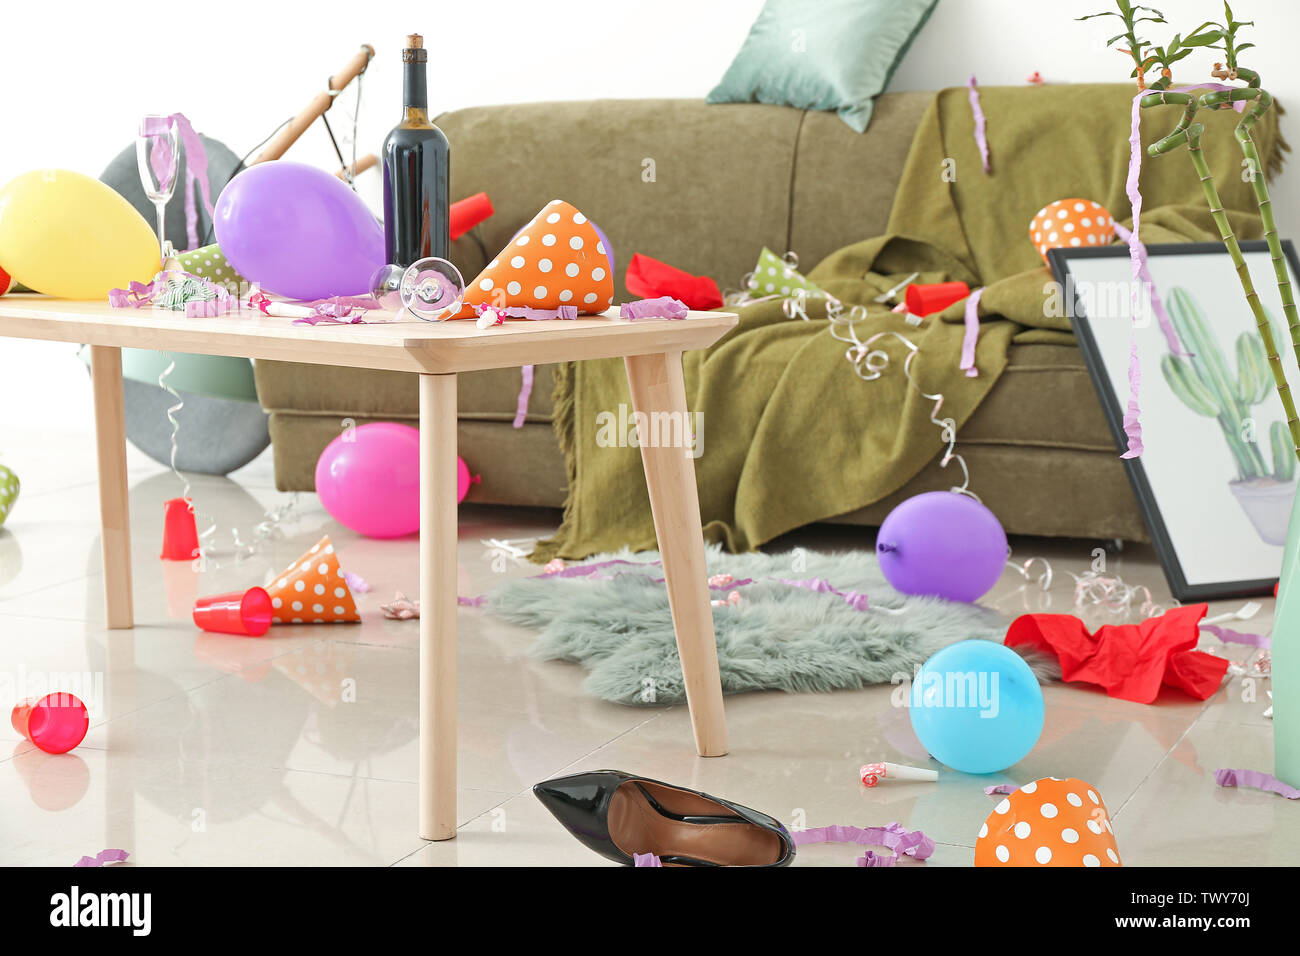 Interior of room after party - Stock Image